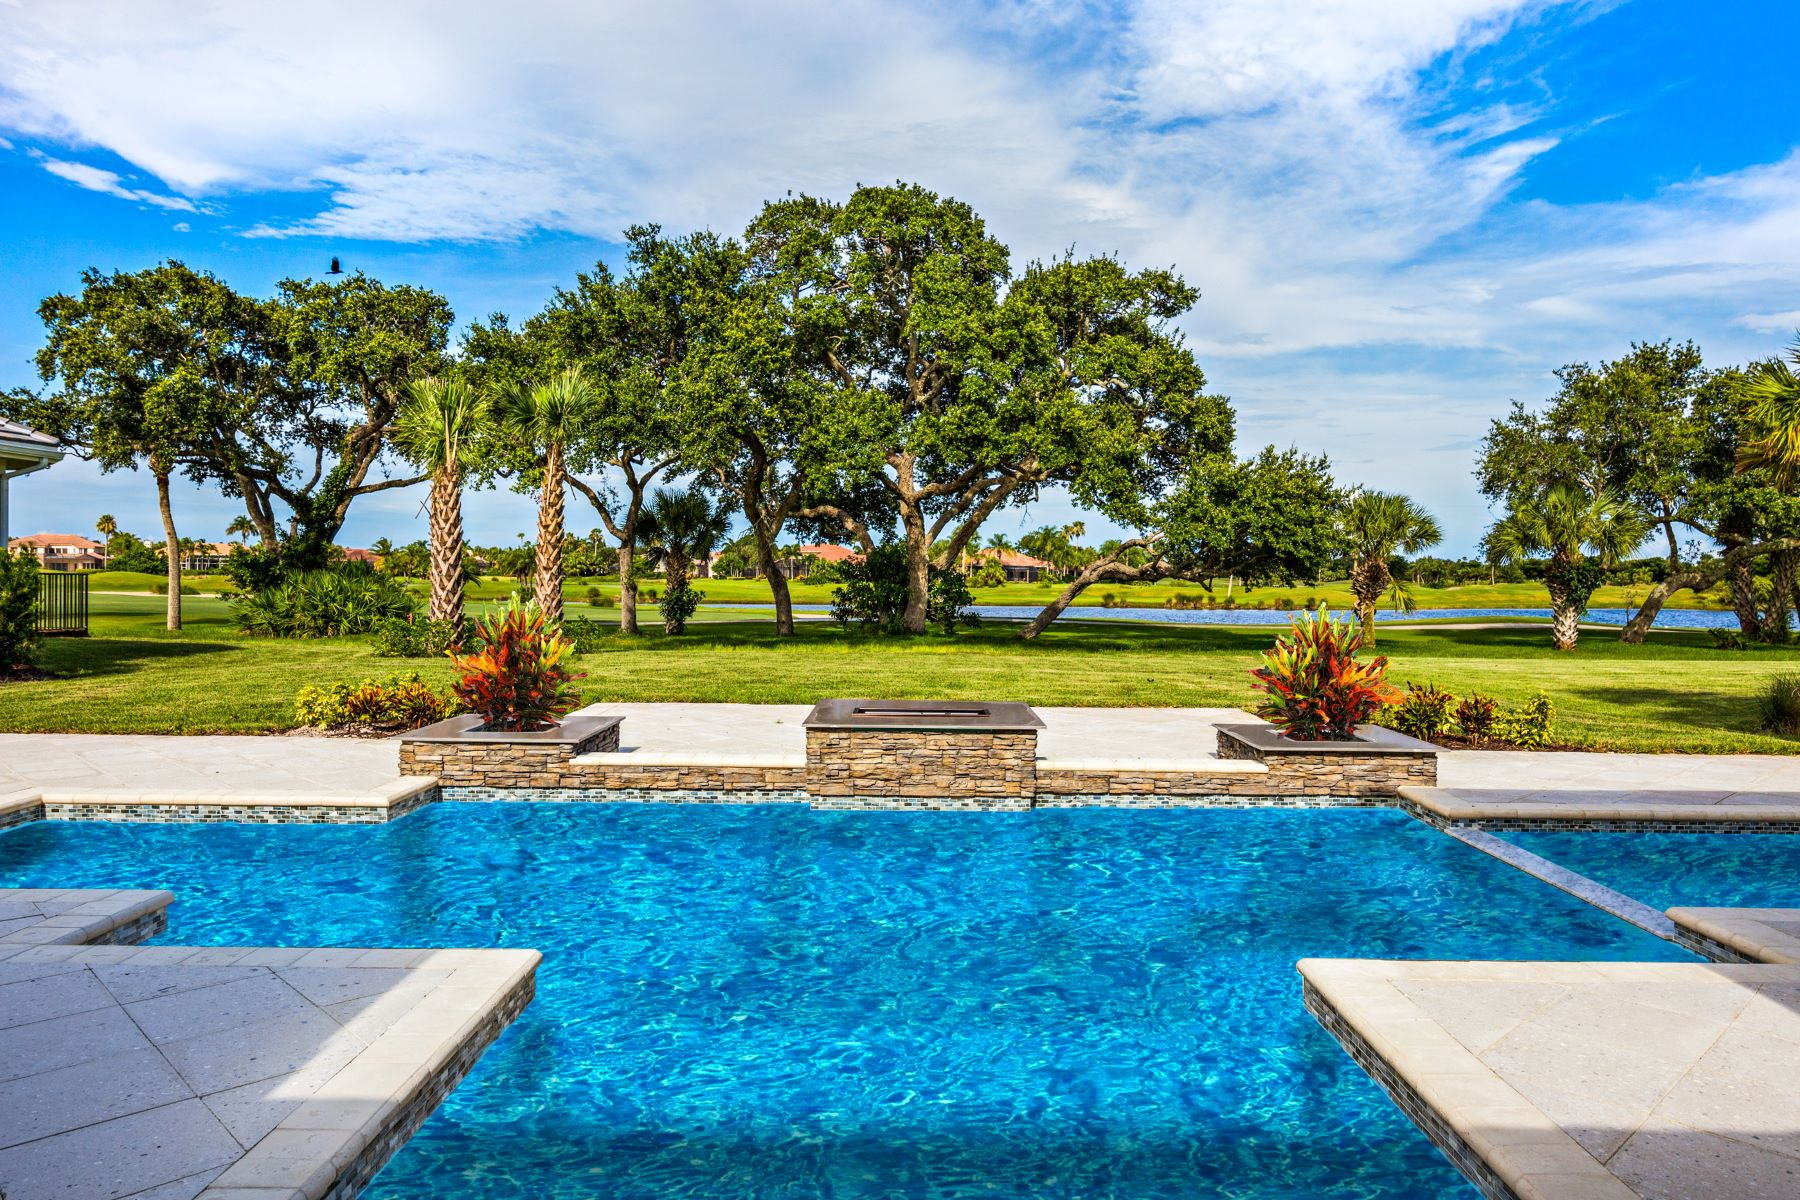 Single Family Homes for Sale at Luxury New Construction in Grand Harbor 2356 Grand Harbor Reserve Square Vero Beach, Florida 32967 United States